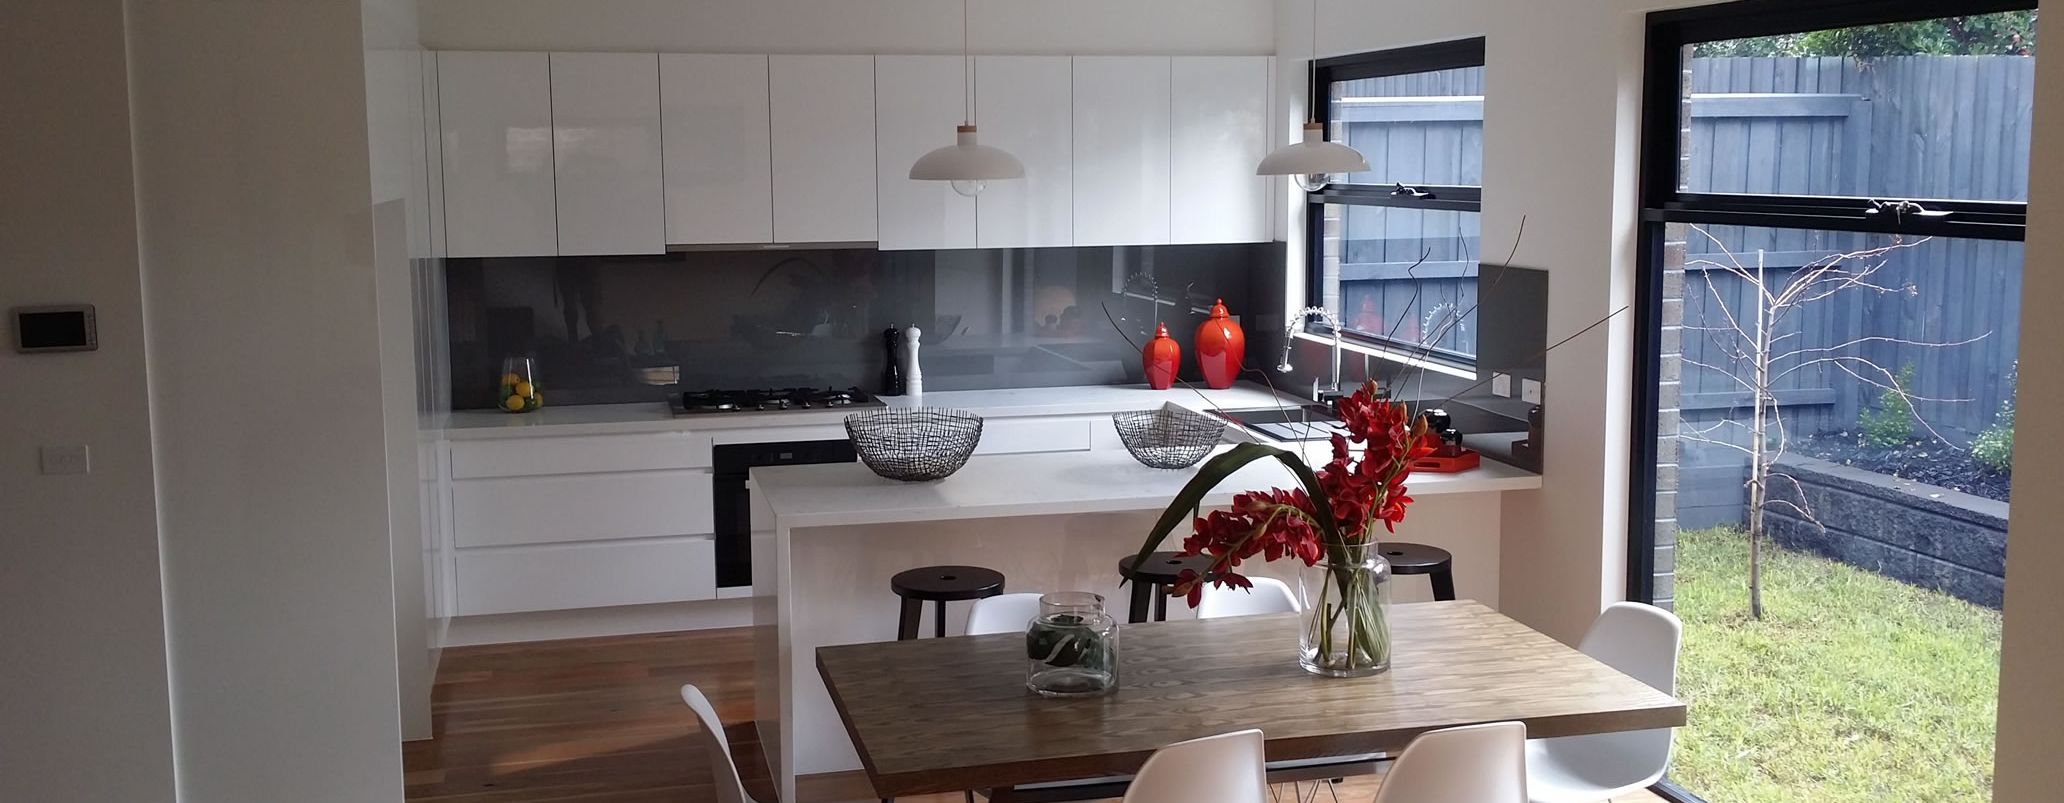 Alfresco Kitchens - Modern Kitchens Melbourne